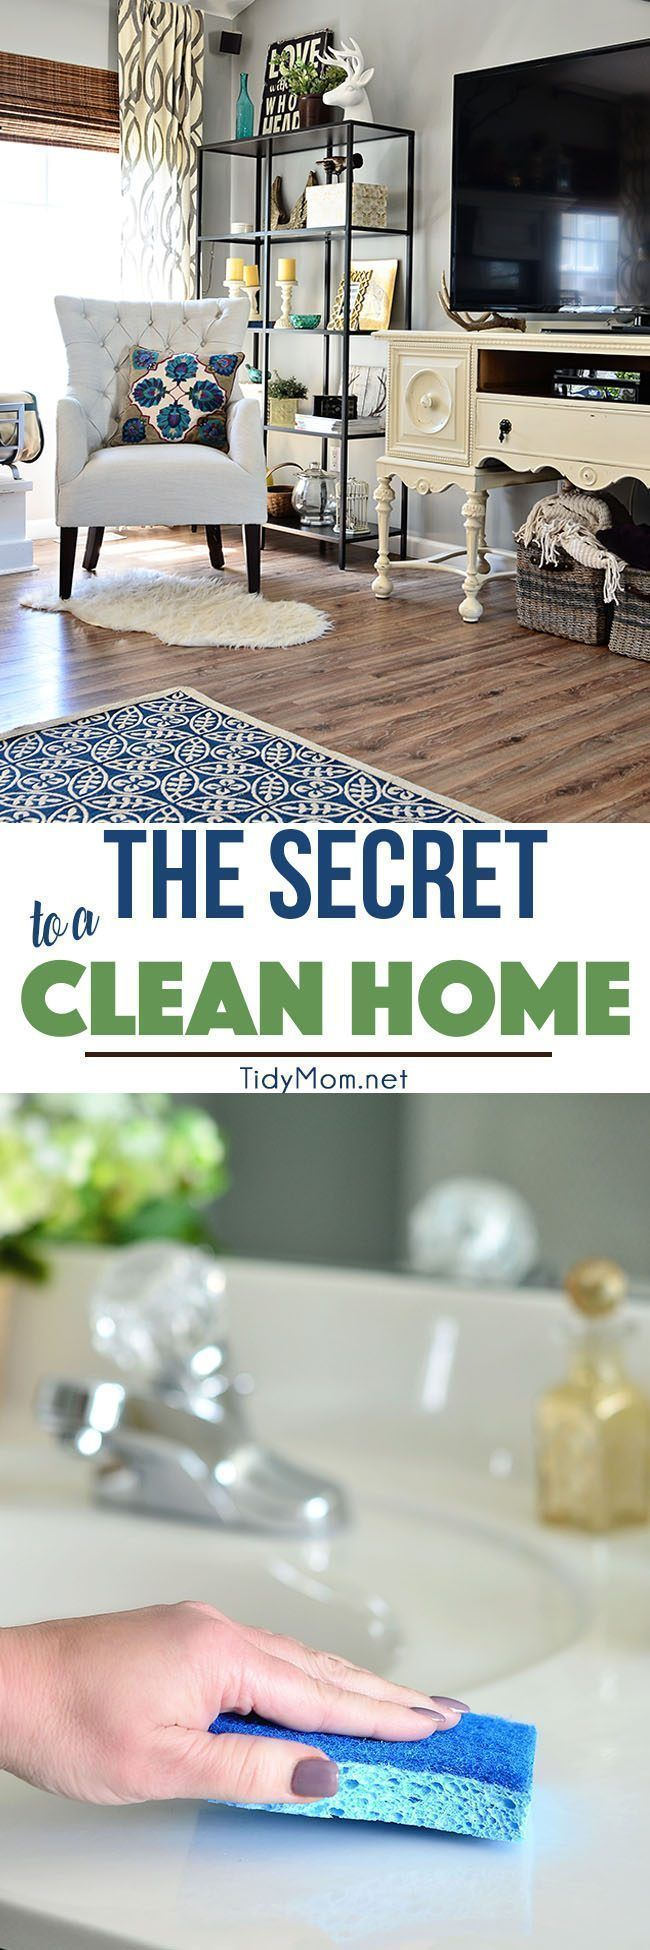 The key to good a spring cleaning and living in a cleaner house actually starts with clearing the clutter in your home. The more organized your home is, the easier it will be to keep clean. The Secret to a Clean Home at http://TidyMom.net #cleanfeelsgood